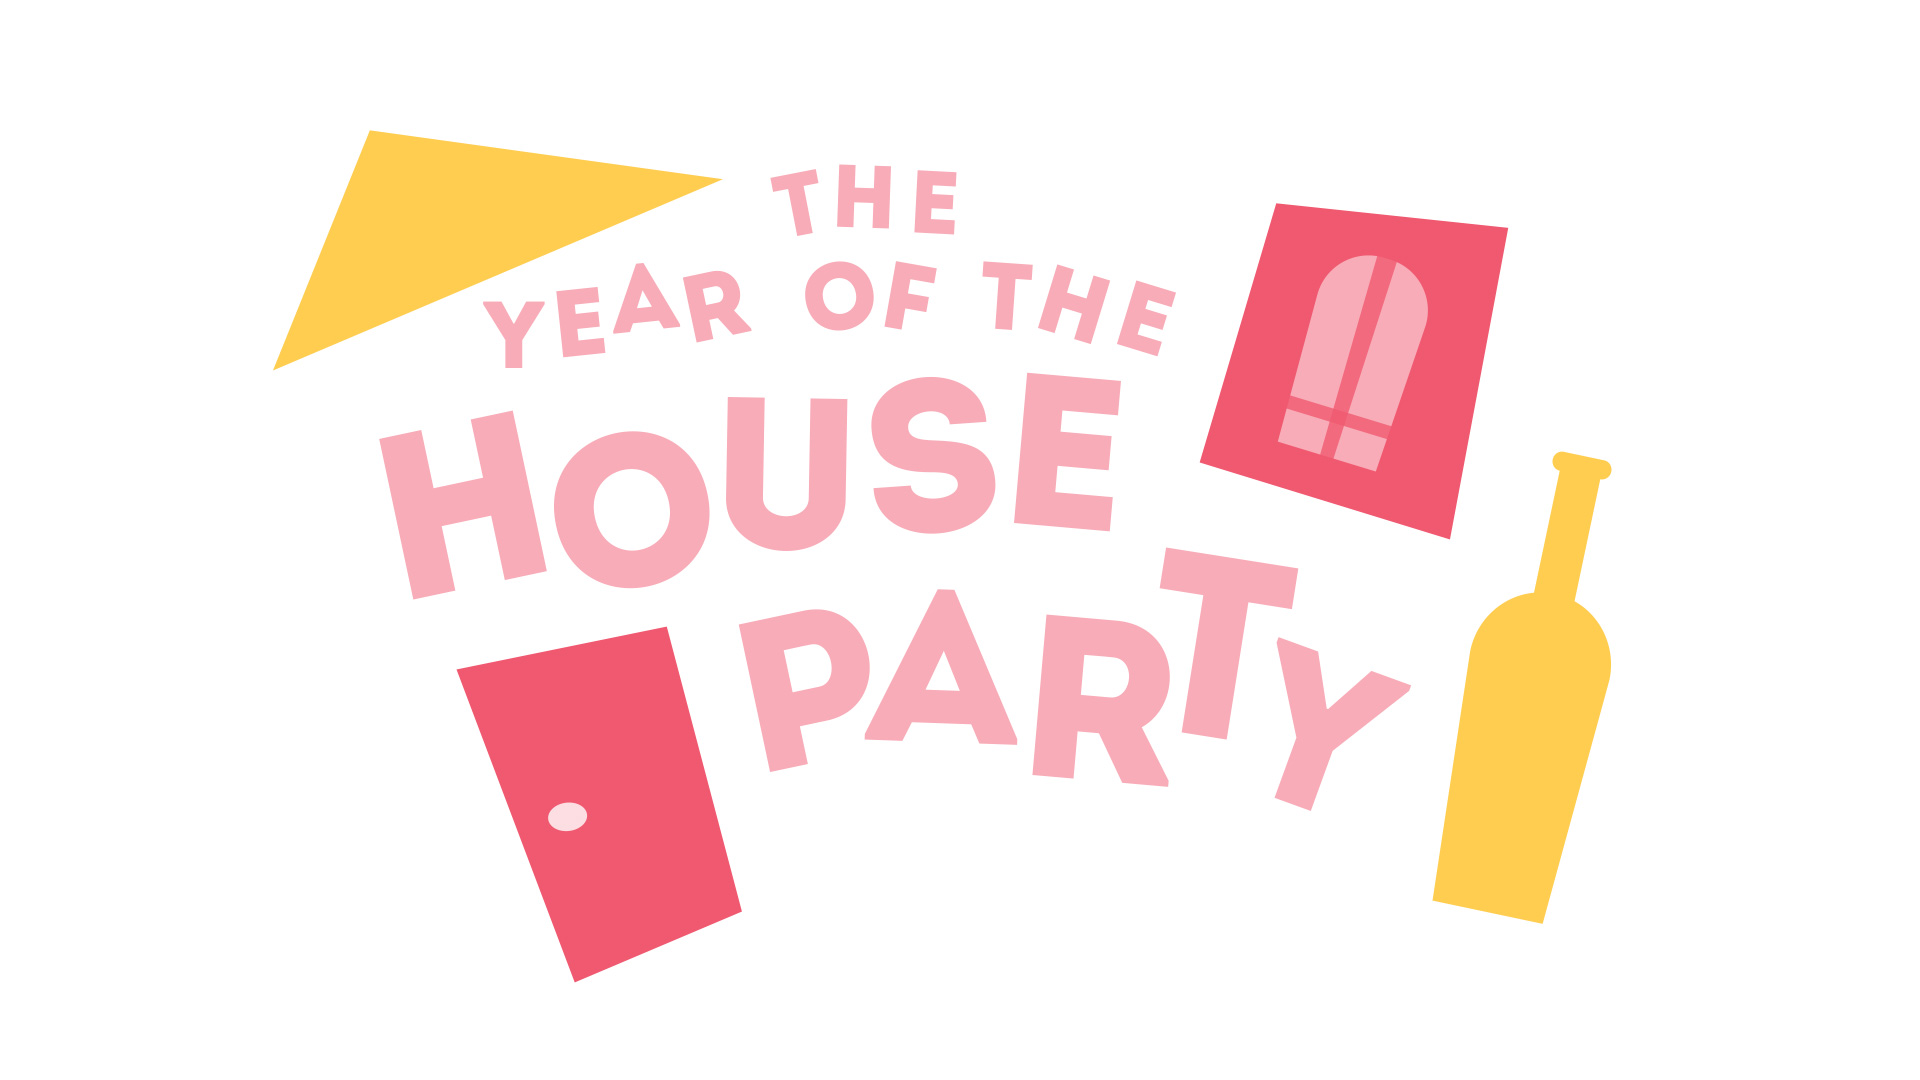 """Image 2/6: Illustrations in a pink, orange, and yellow color scheme with the words """"The year of the house party."""""""